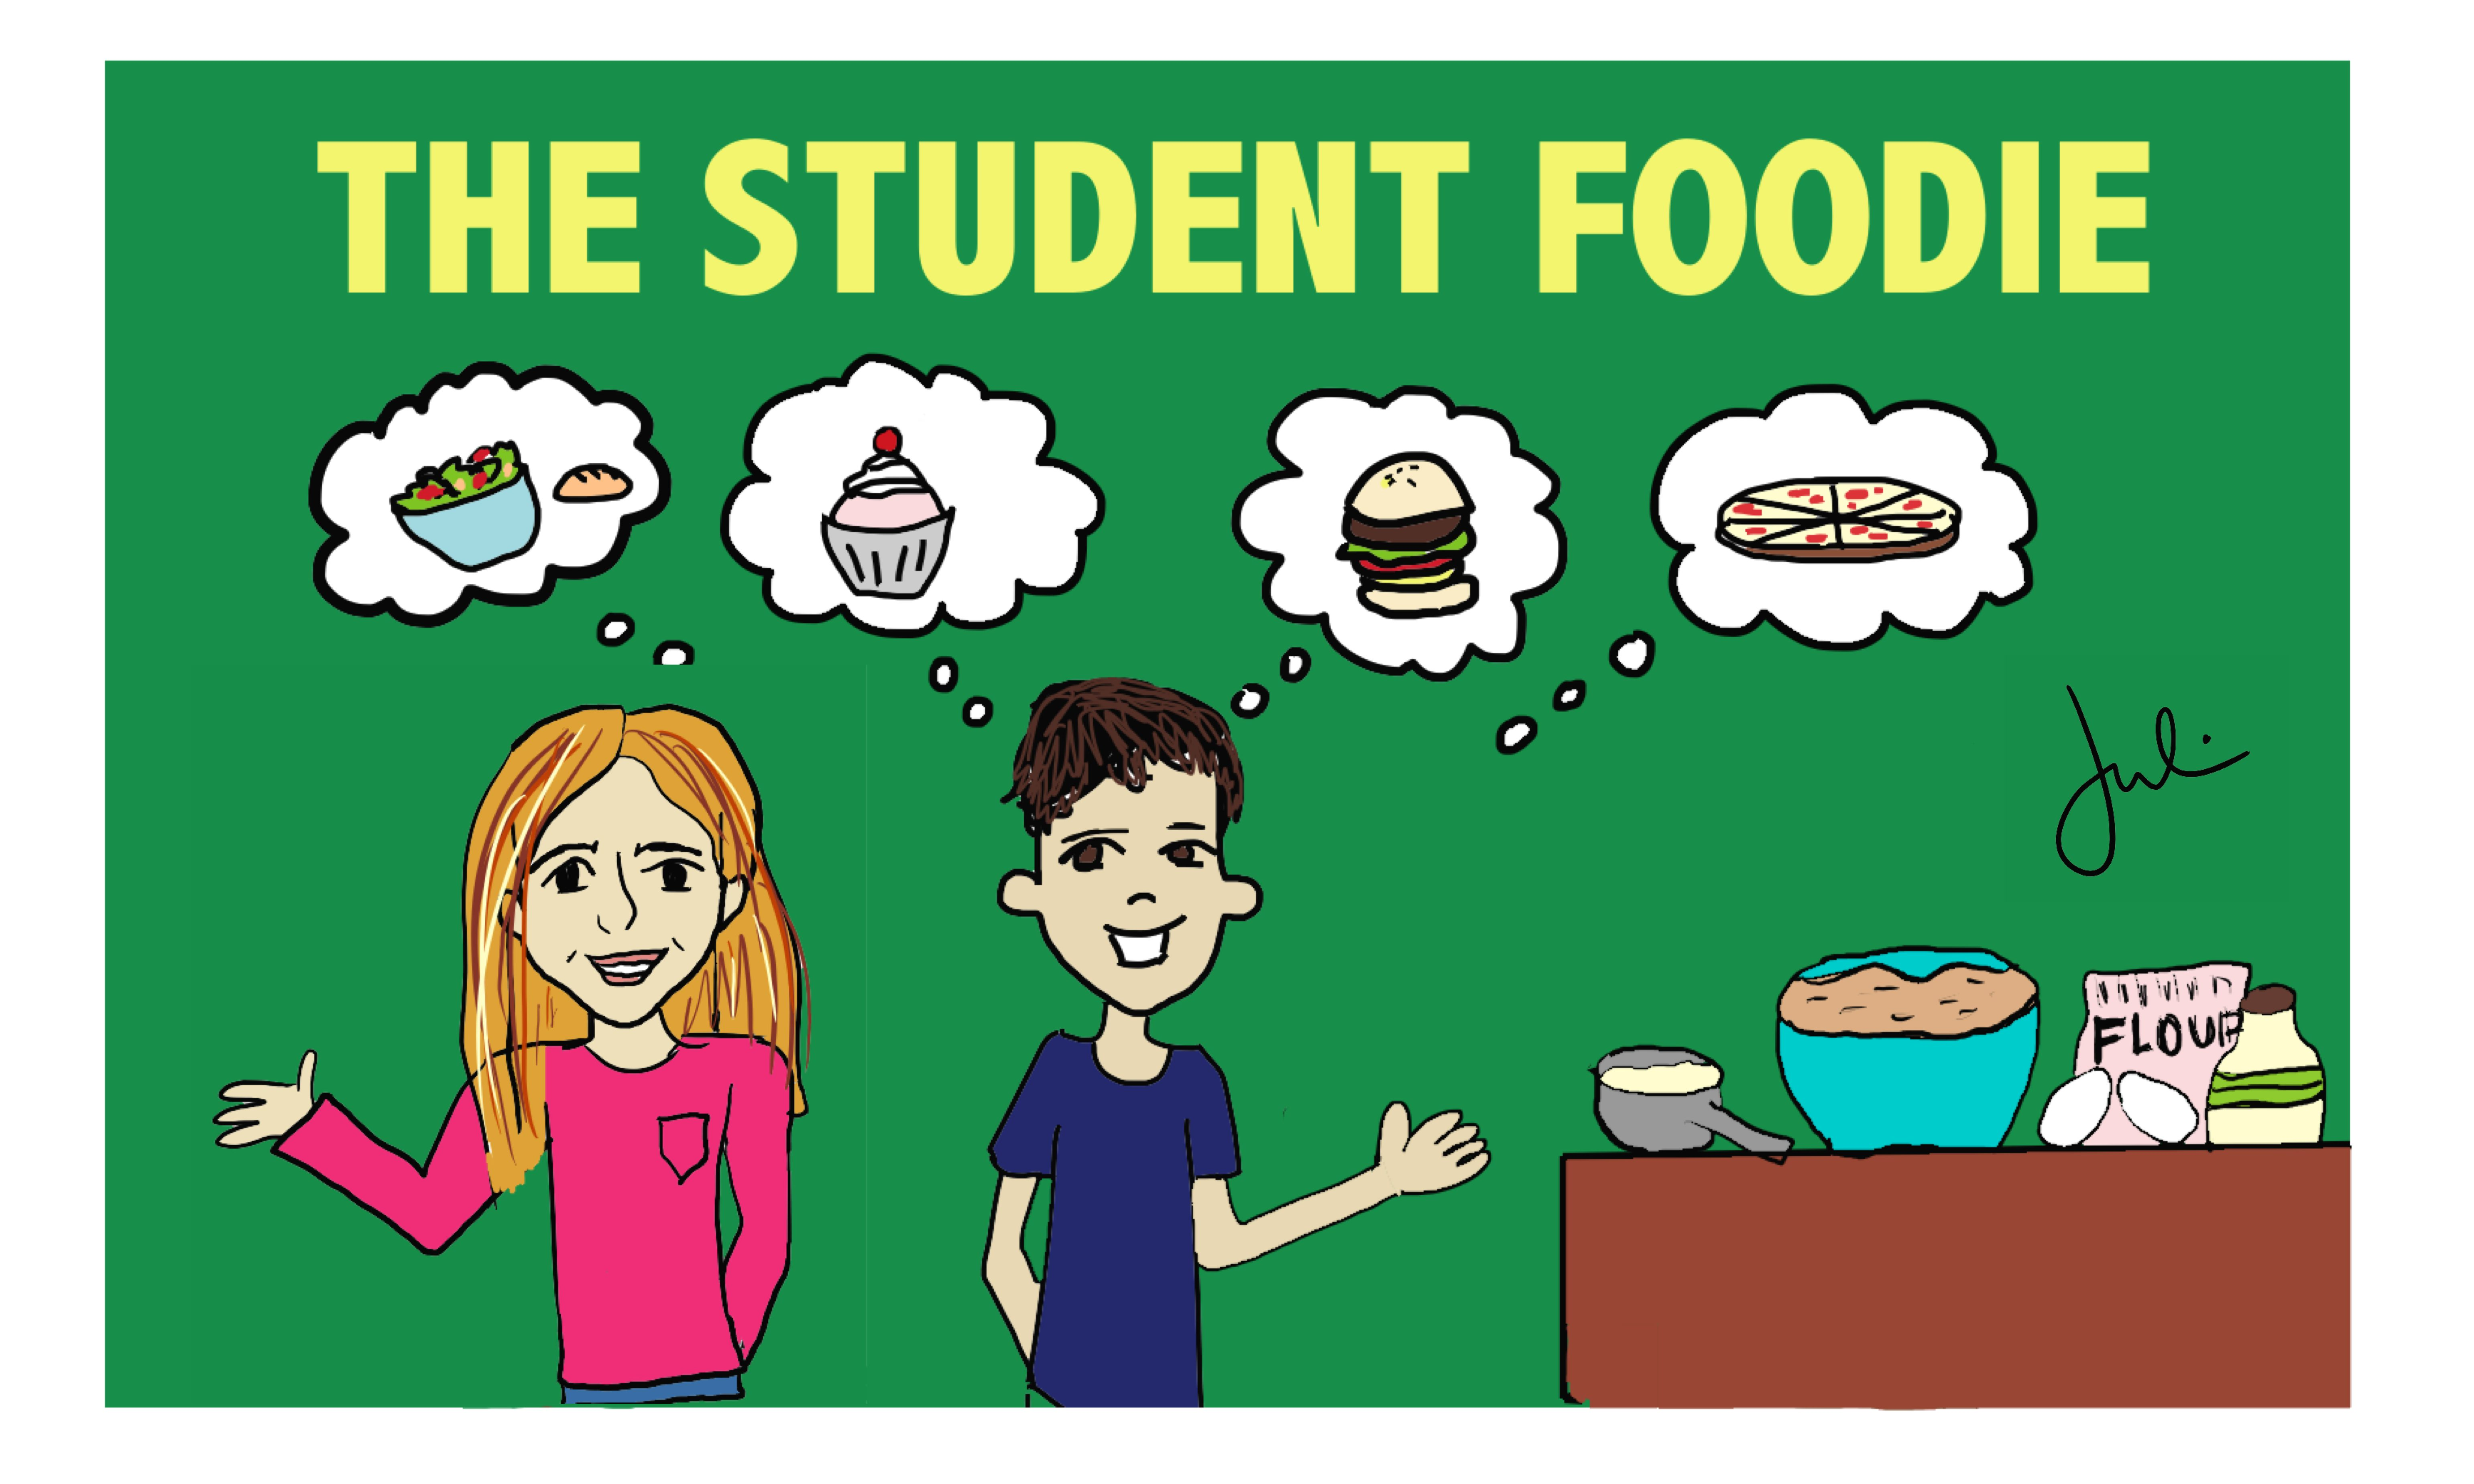 The Student Foodie: This blog follows seasonal trends in culinary arts and offers fun and creative recipes that are easy for anybody to make. Check out more blog posts at theNewtonite.com. Graphic made by Julia Moss.